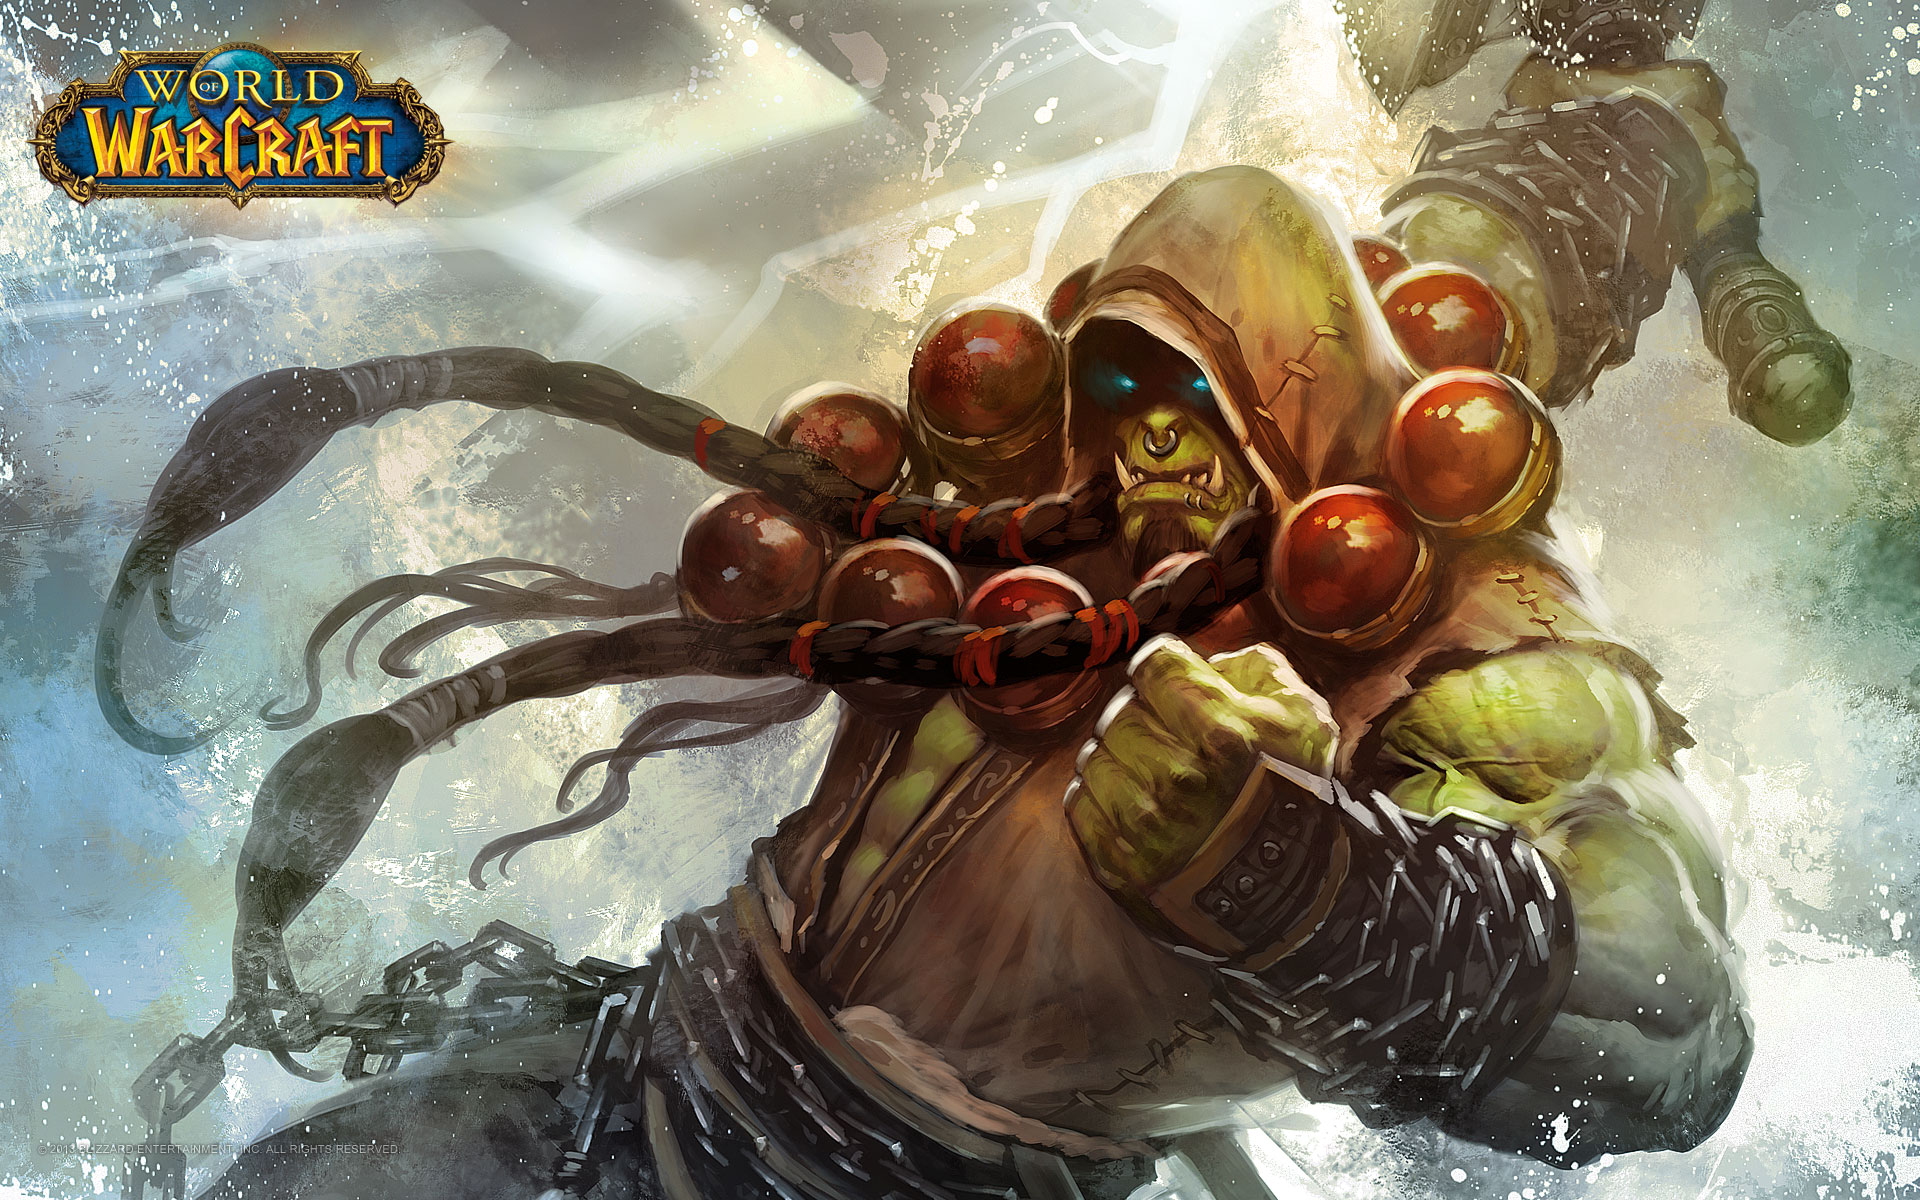 warcraft thrall wow - photo #22